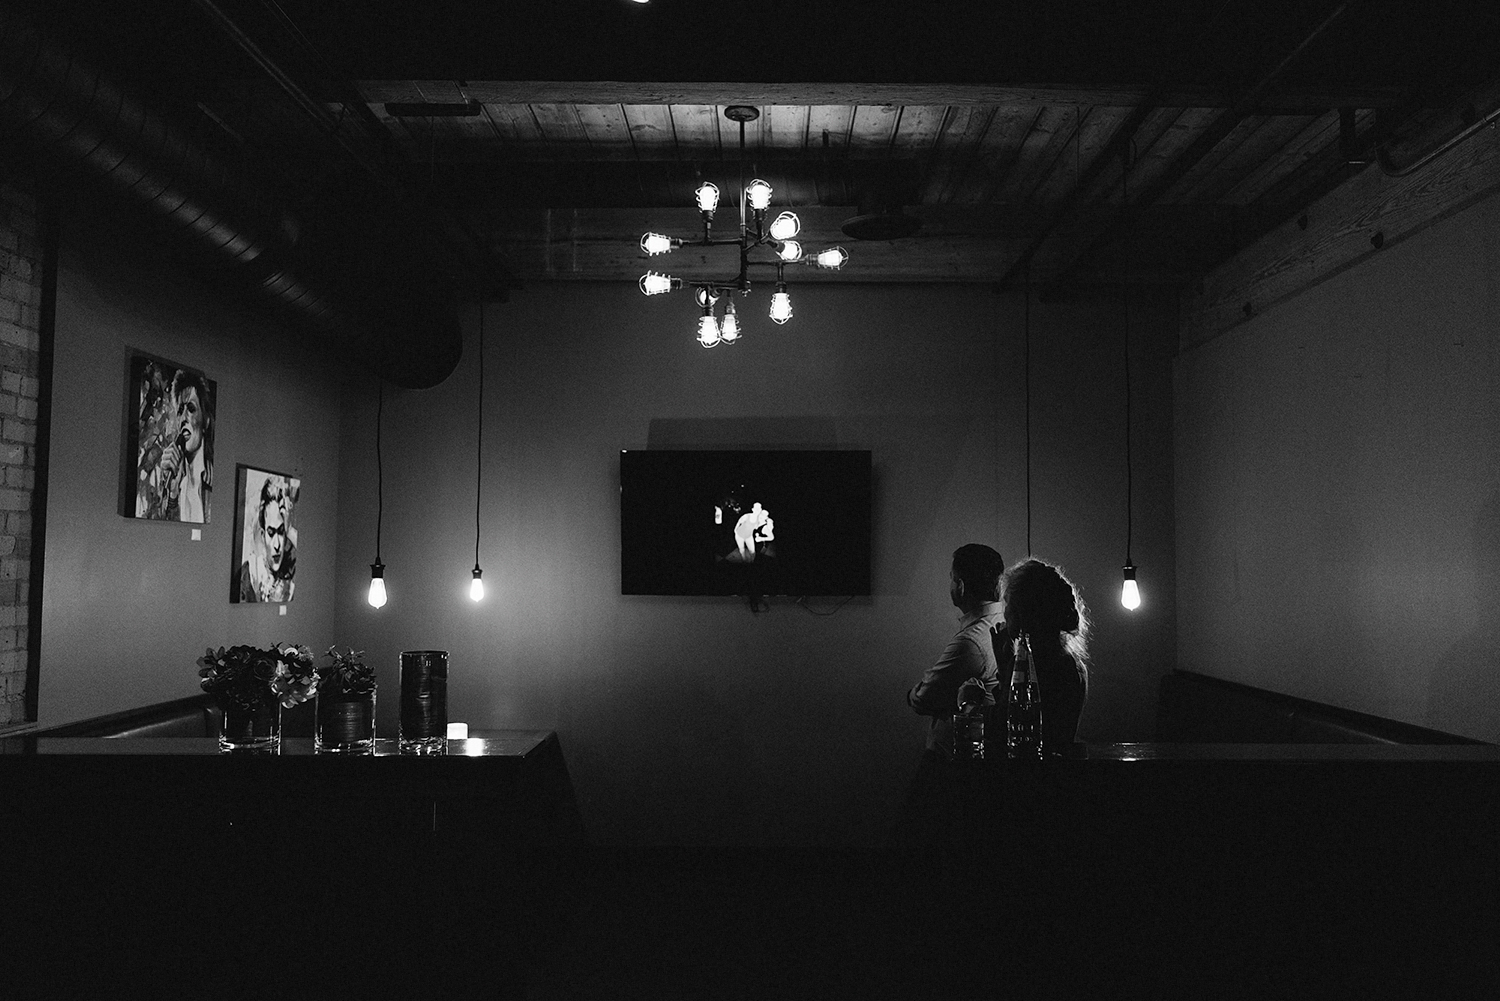 53-liberty-village-wedding-reception-toronto-craft-brewery-wedding-photographer-alternative-unique-analog-film-candid-documentary-moments-3.jpg